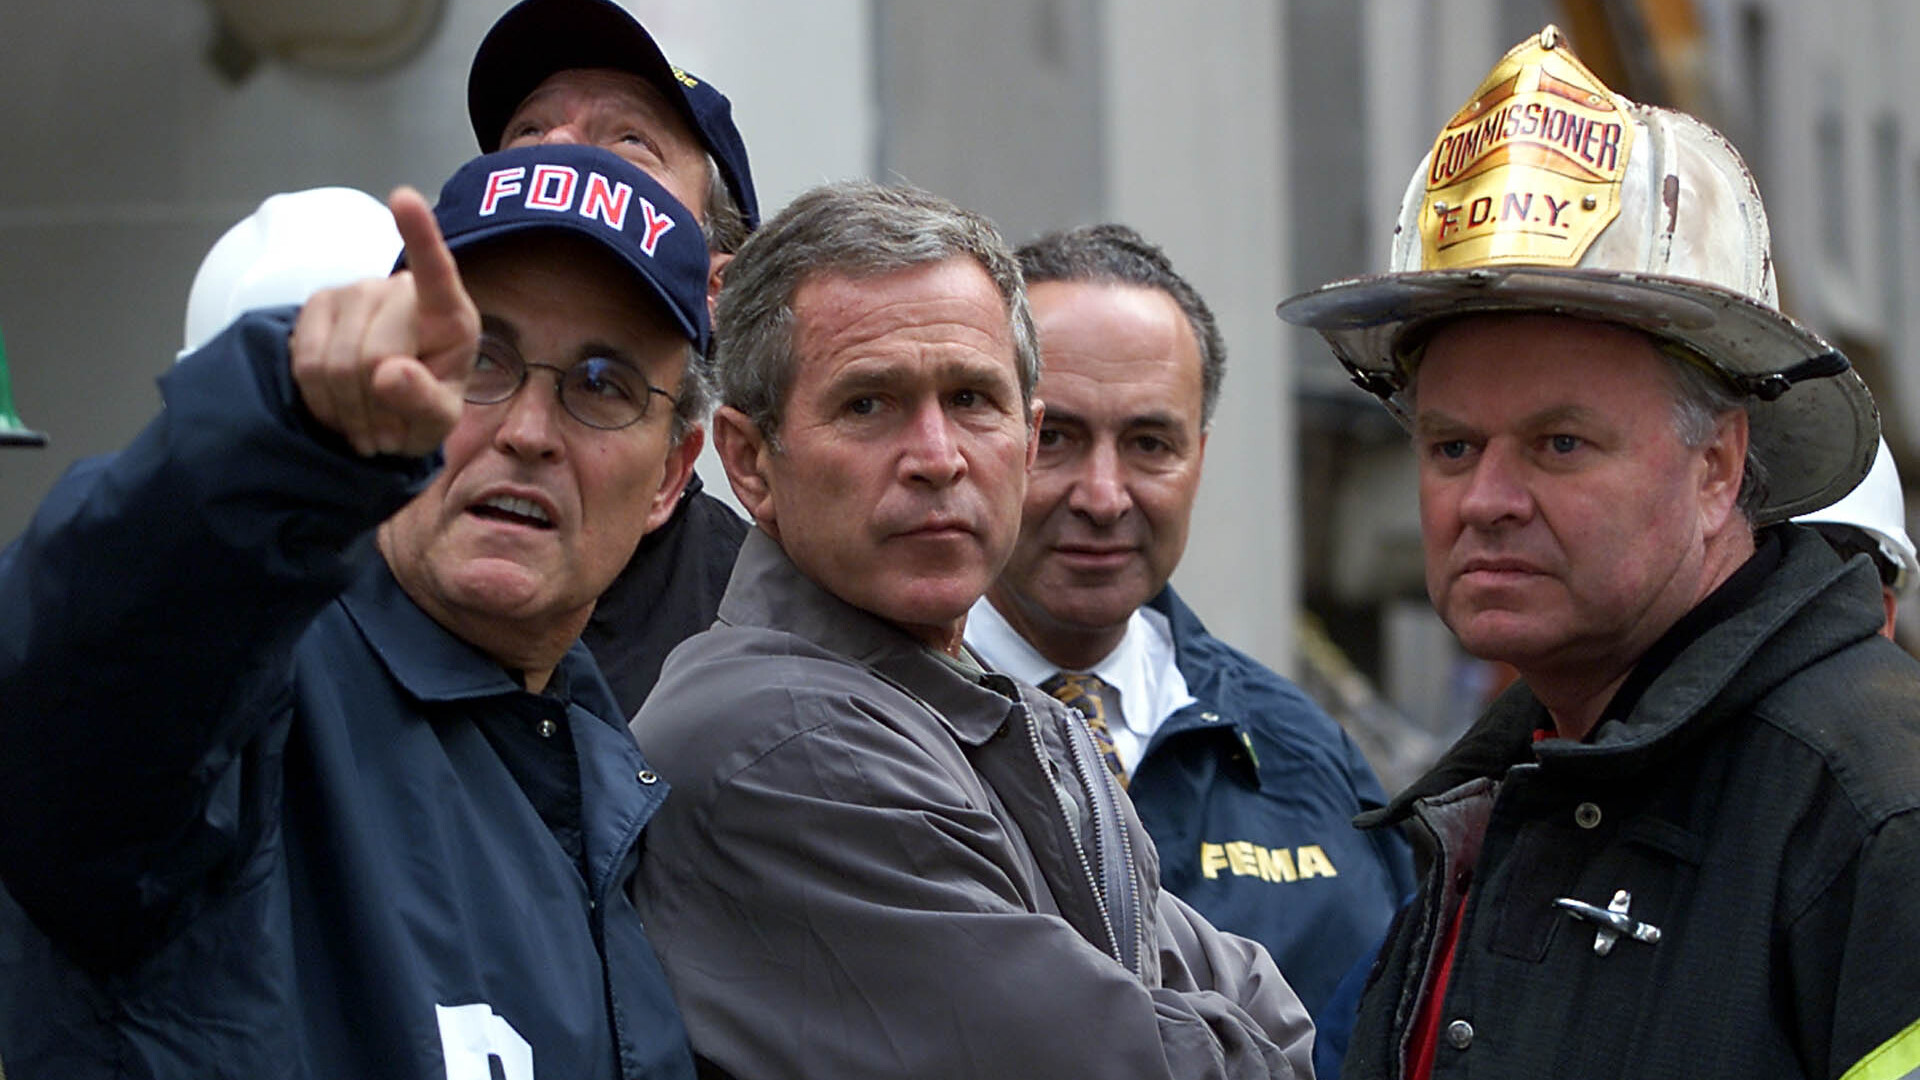 Powell, Bush, Giuliani: protagonists of 9/11. Where were they then, where are they now?